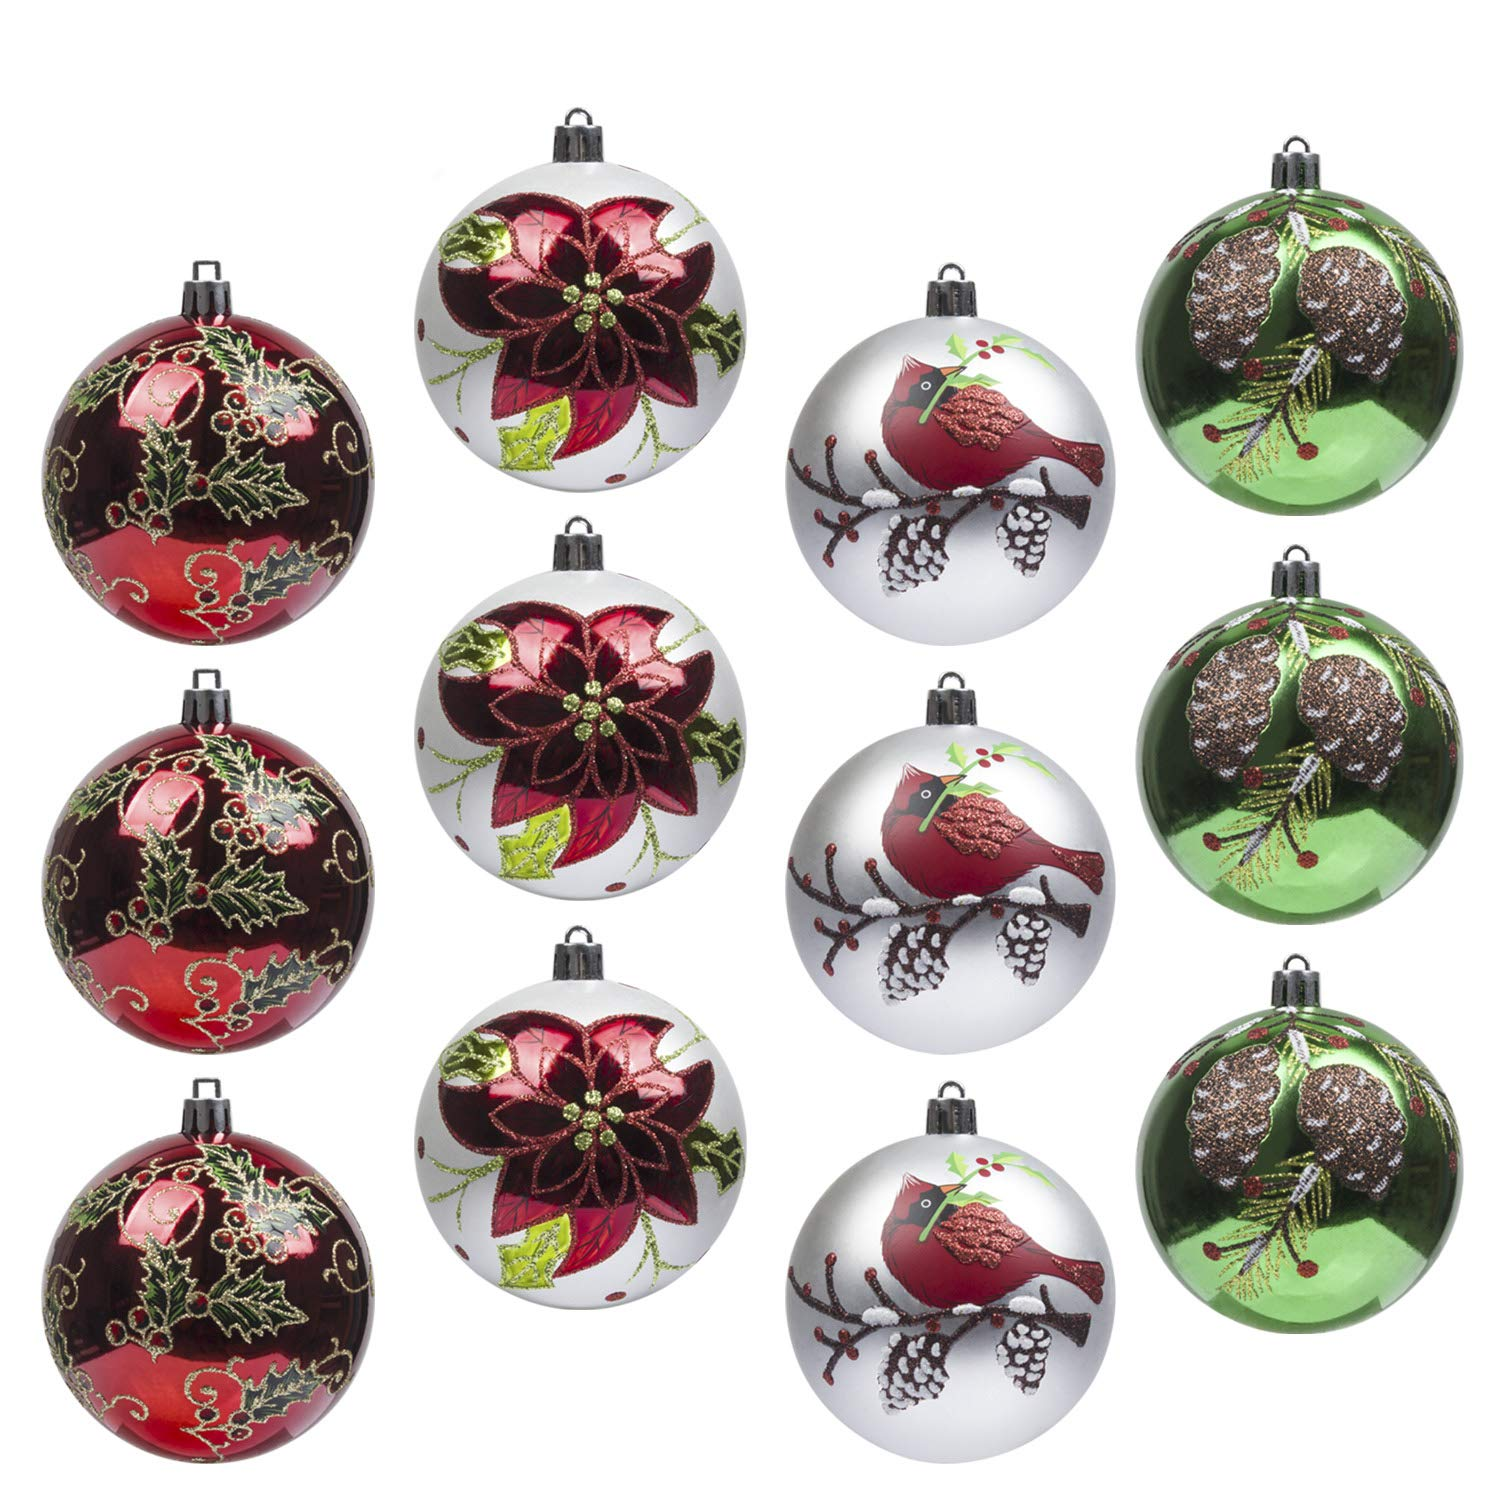 Christmas Baubles.Art Beauty Christmas Baubles 12pcs Shatterproof Xmas Tree Decoration Ornaments 80mm Handcrafted For Christmas Party Wedding Decor 80mm Woodland